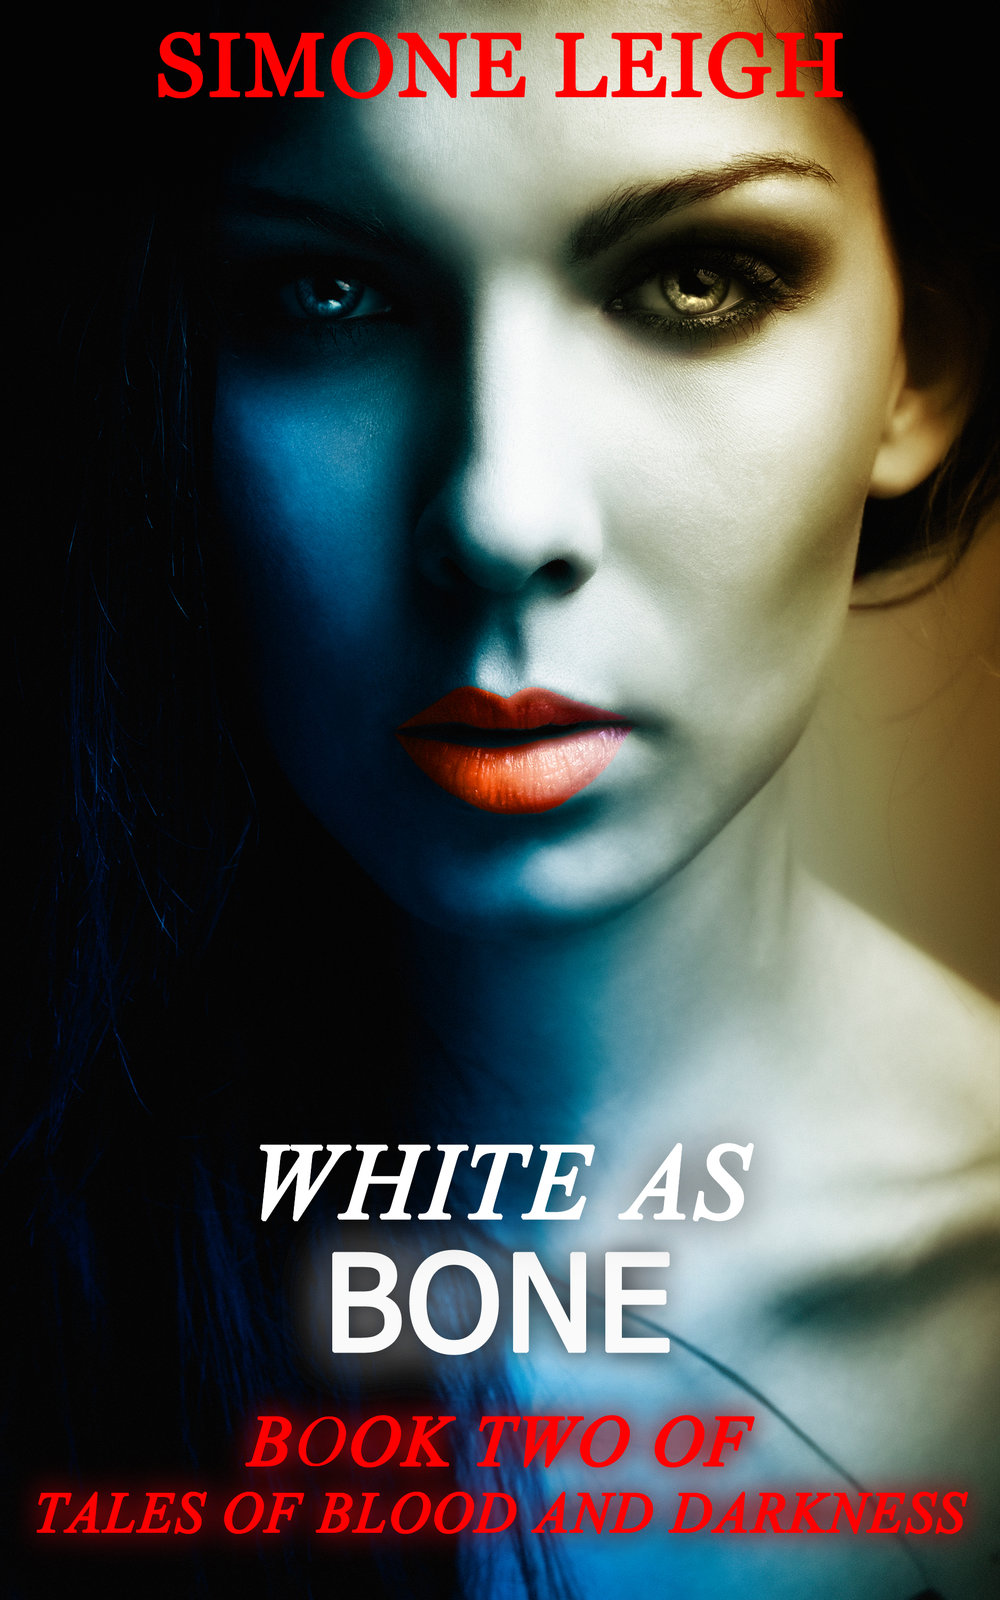 White as Bone - When you are innocent, but cursed, every hand is raised against you.Re-telling of an old fairy tale.Not for the kiddies.Some mild sexual content.Approx 5,000 words